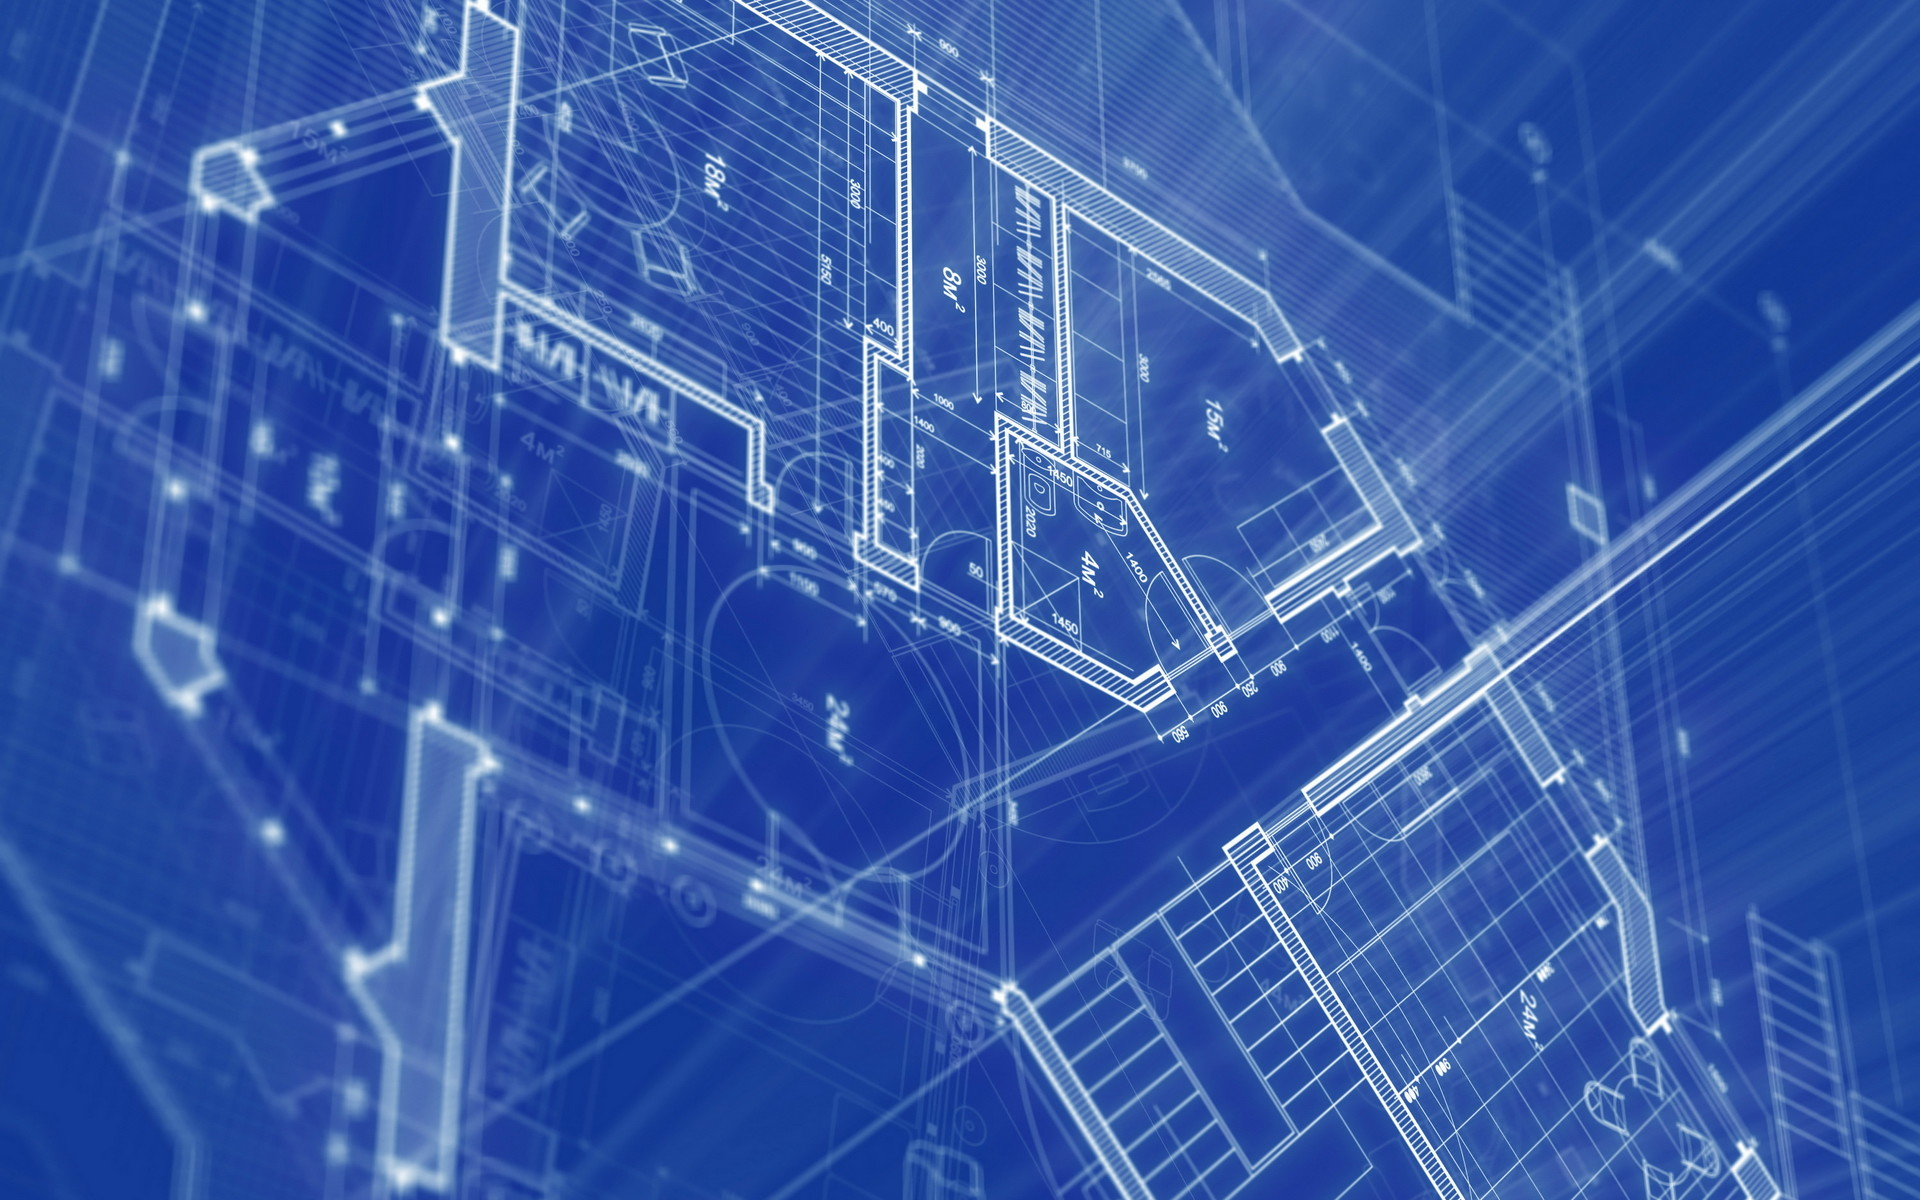 1920x1200 Blueprint Architecture HD Widescreen Desktop Wallpaper